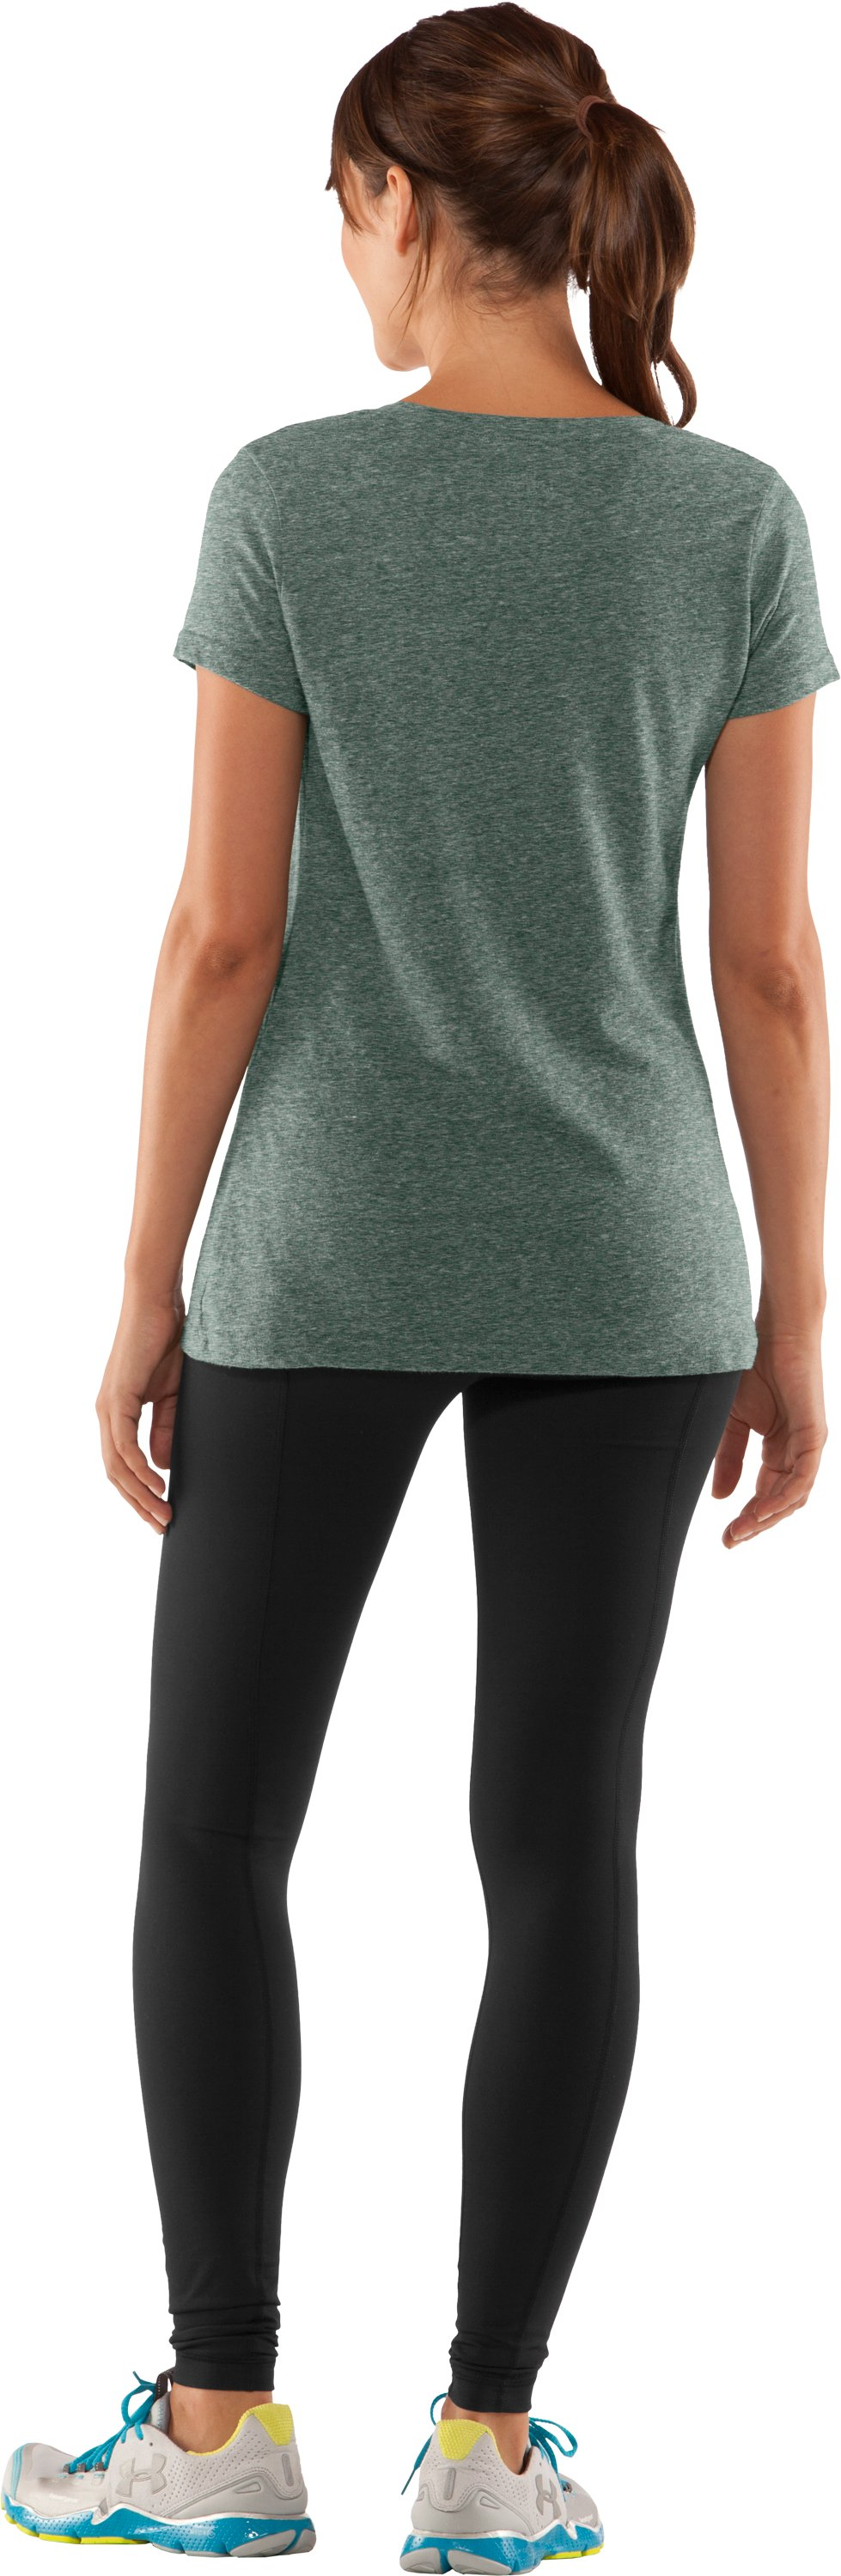 Women's South Florida Under Armour® Legacy T-Shirt, Forest Green, Back